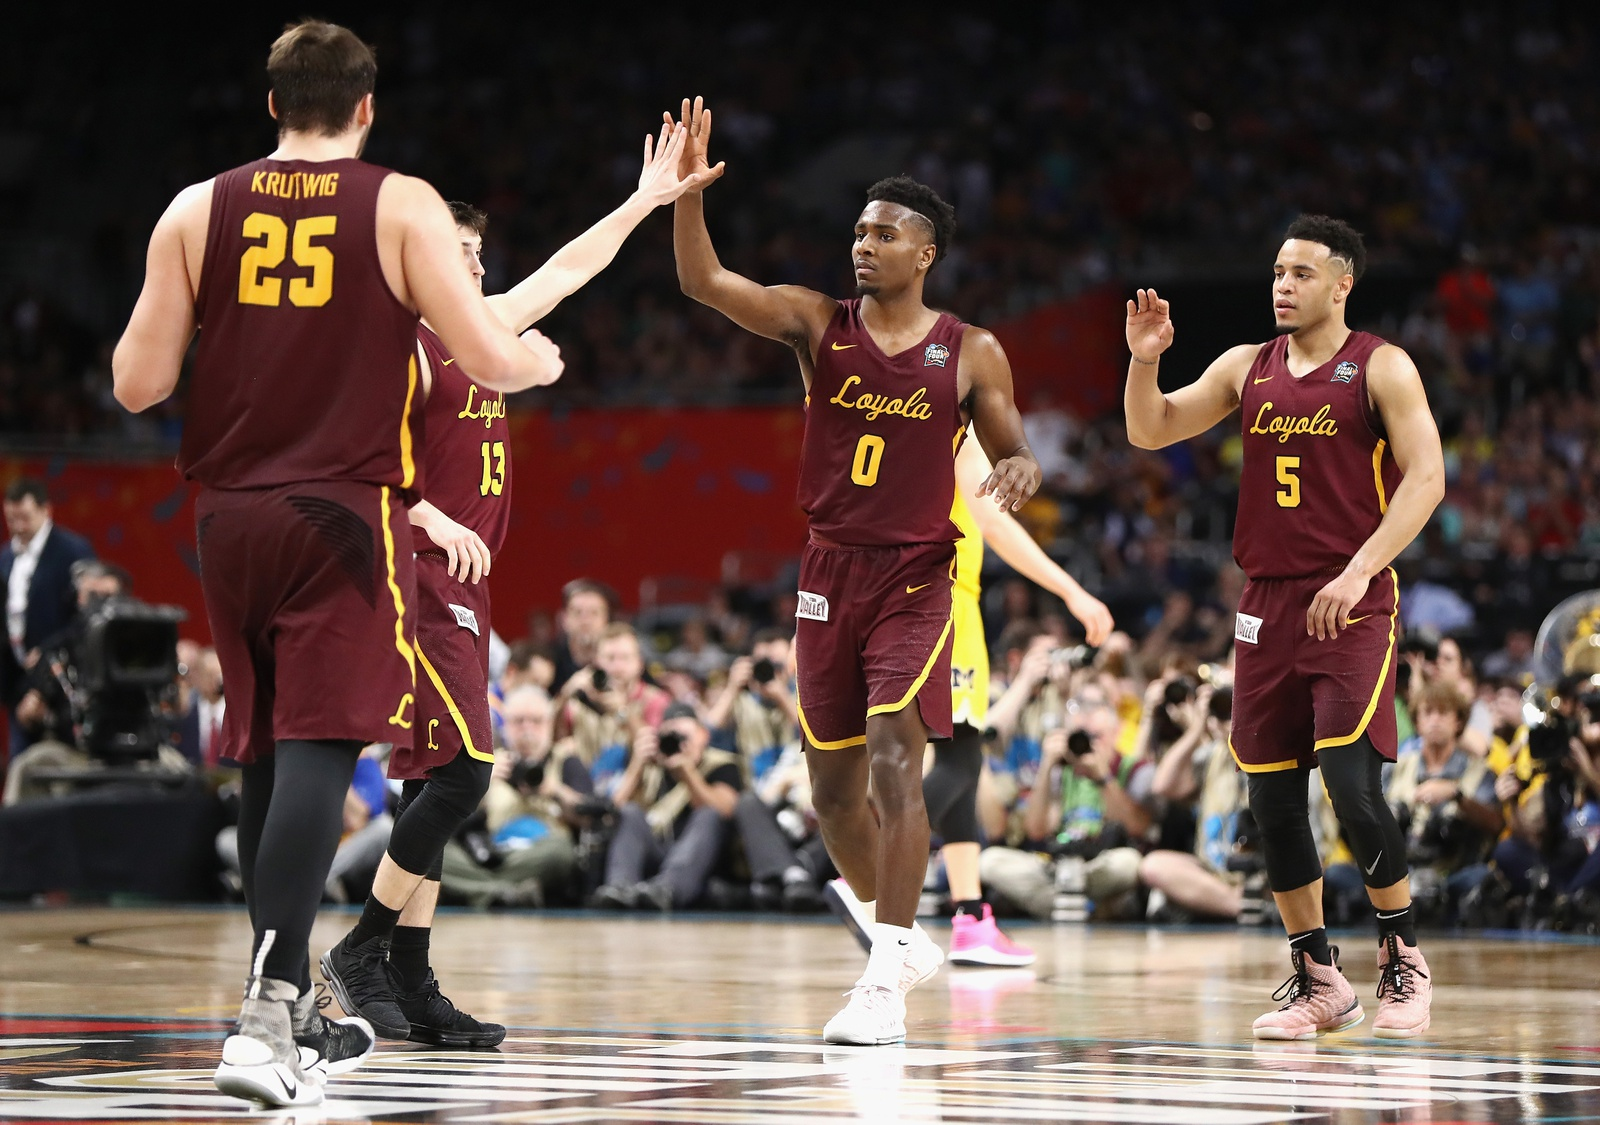 Donte Ingram #0 of the Loyola Ramblers celebrates with teammates late in the first half against the Michigan Wolverines during the 2018 NCAA Men's Final Four Semifinal at the Alamodome on March 31, 2018 in San Antonio, Texas.